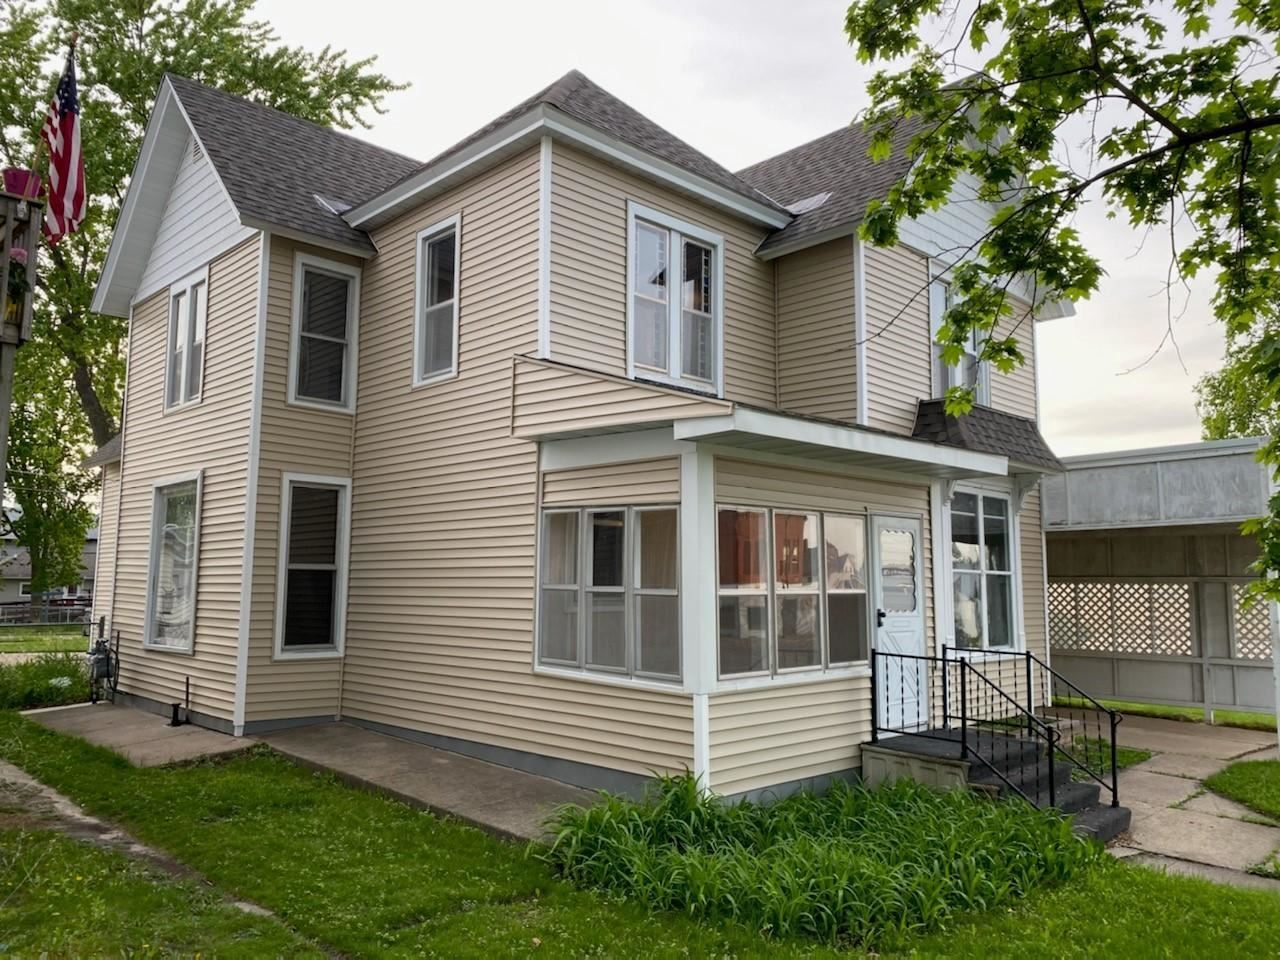 407 Superior Ave, Tomah, WI 54660 - MLS#: 1686995